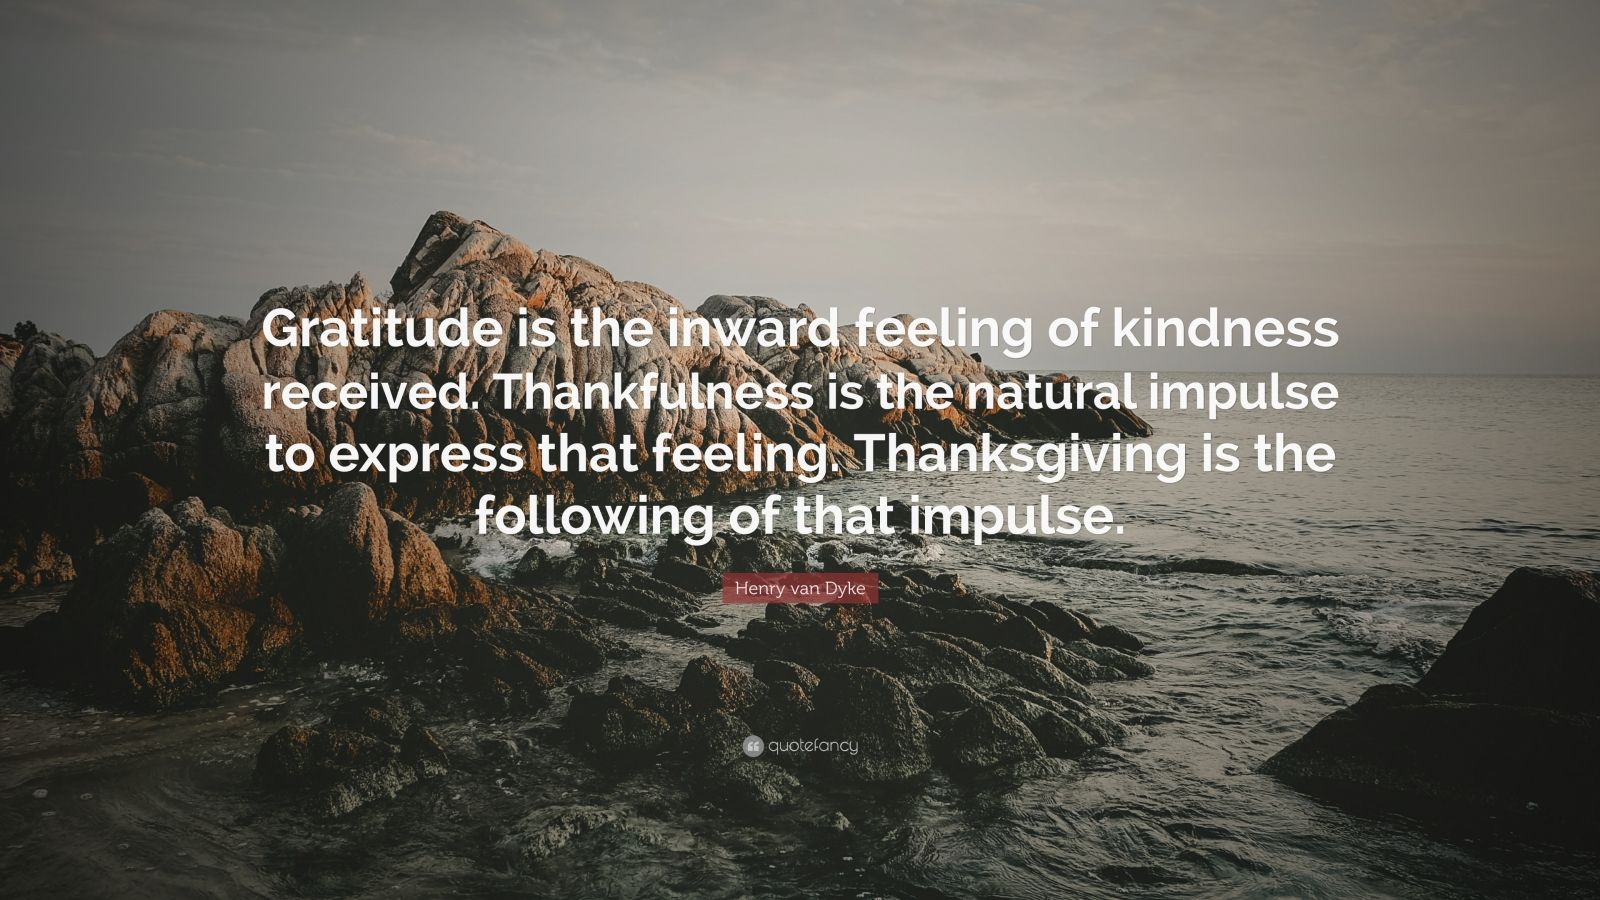 """Henry van Dyke Quote: """"Gratitude is the inward feeling of kindness received. Thankfulness is the natural impulse to express that feeling. Thanksgiving is the following of that impulse."""""""